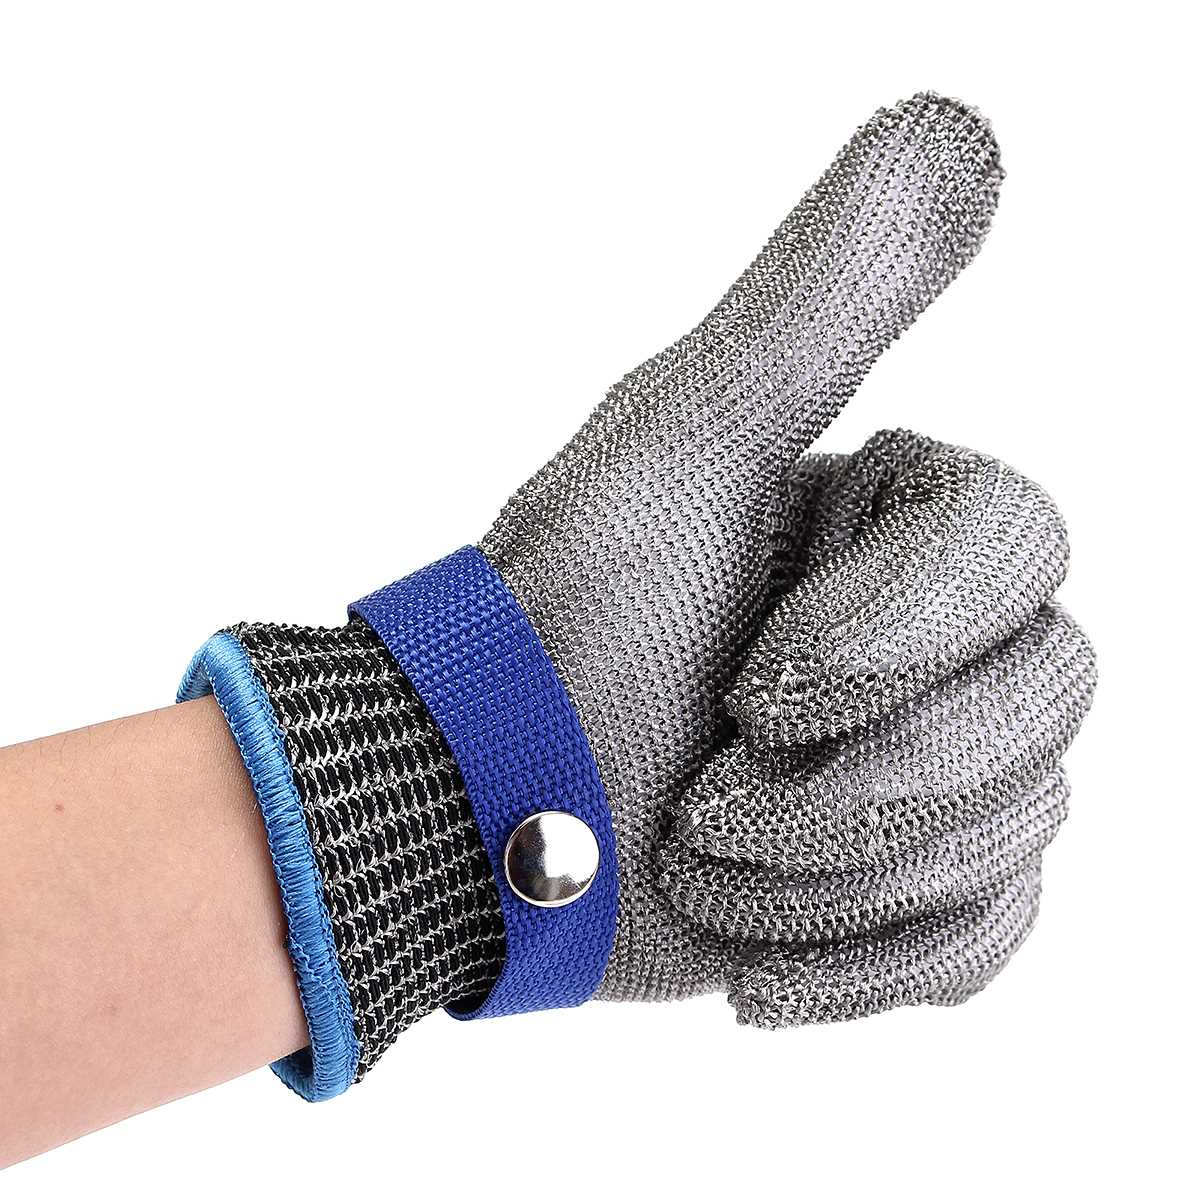 Durable Quality Safety Cut Proof Protect Glove 100% Stainless Steel Metal Mesh Butcher Gloves Grade 5 Safety 23x9.5cm Size M 1pcs safety gloves cut proof stab resistant stainless steel wire metal mesh butcher anti knife